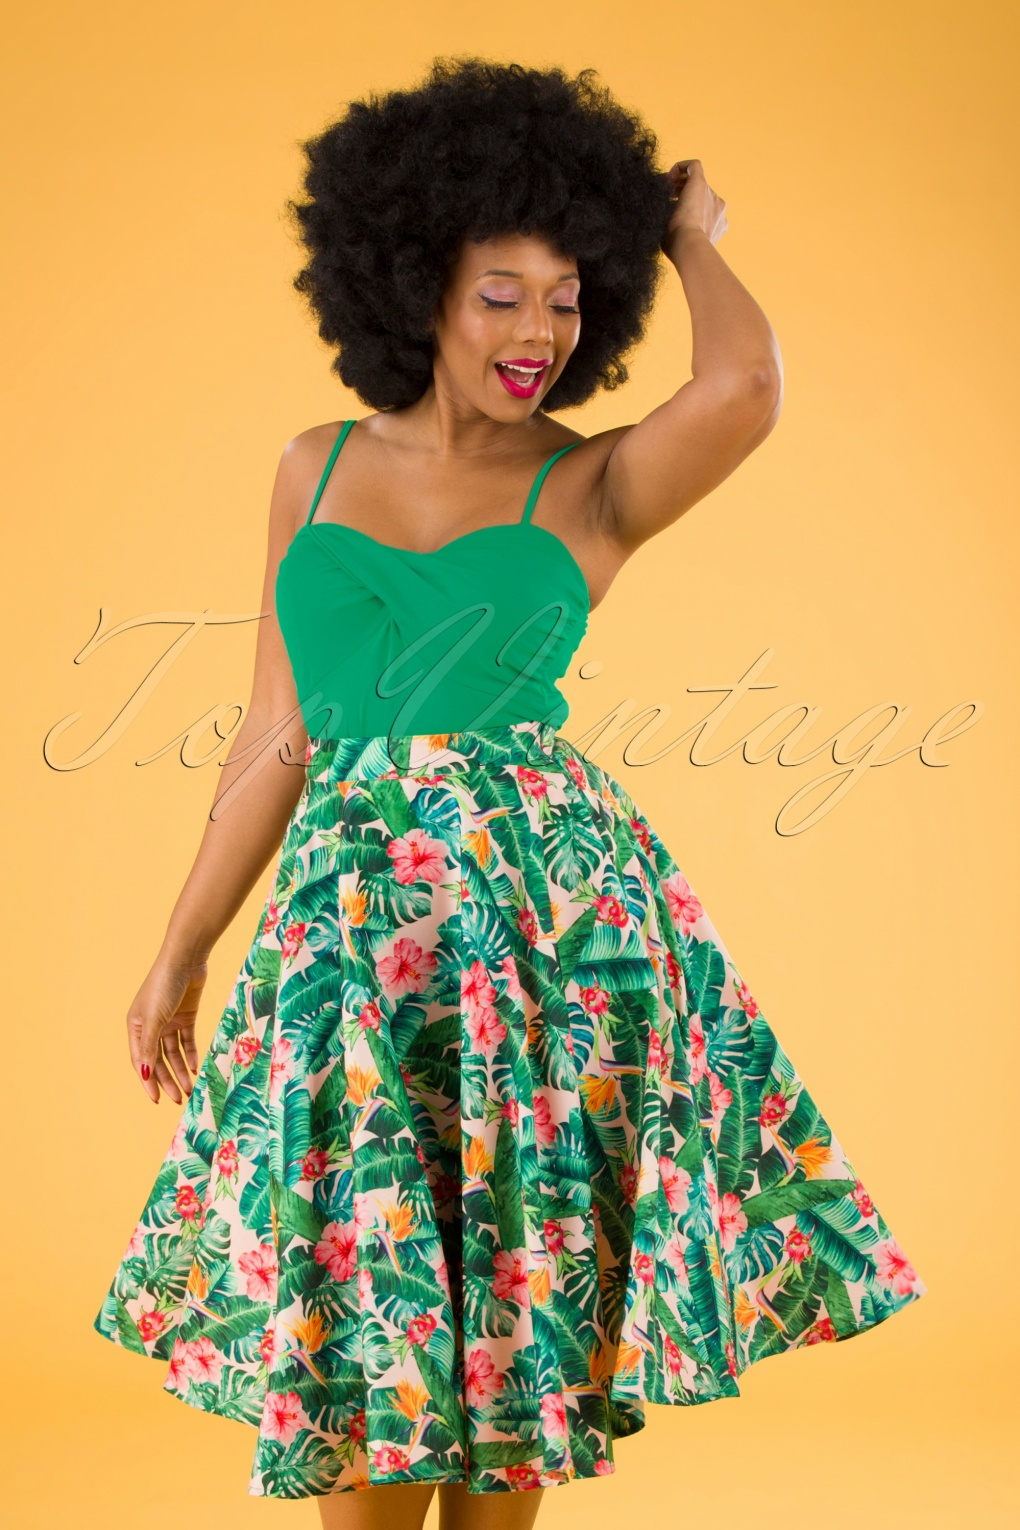 Retro Tiki Dress – Tropical, Hawaiian Dresses Unreal Redheads Collaboration  50s Jinkx Floral Tropical Skirt in Pink and Green £39.95 AT vintagedancer.com